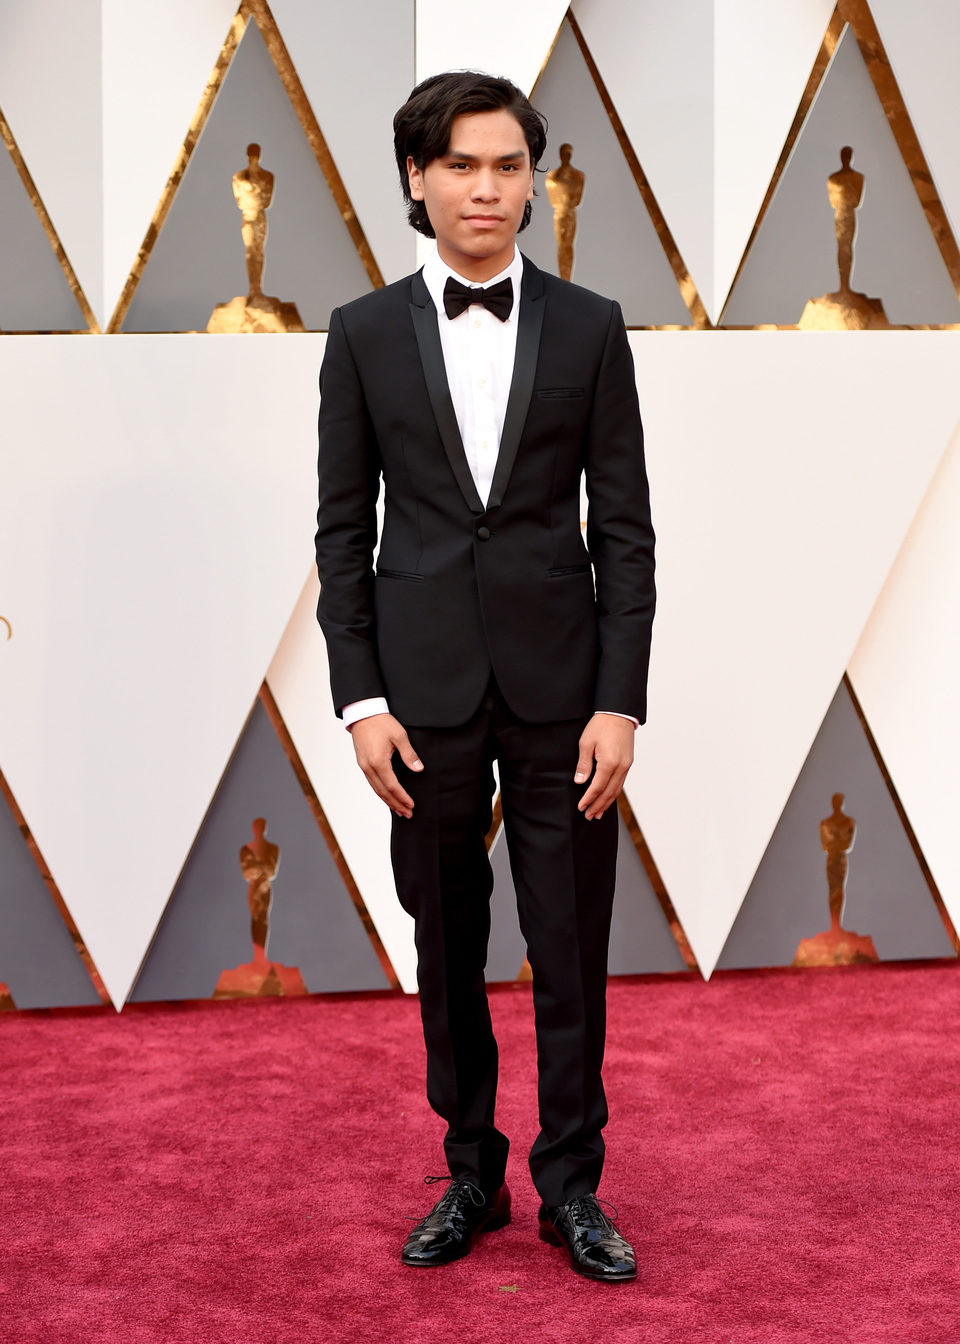 Forrest Goodluck at the Oscars 2016 red carpet